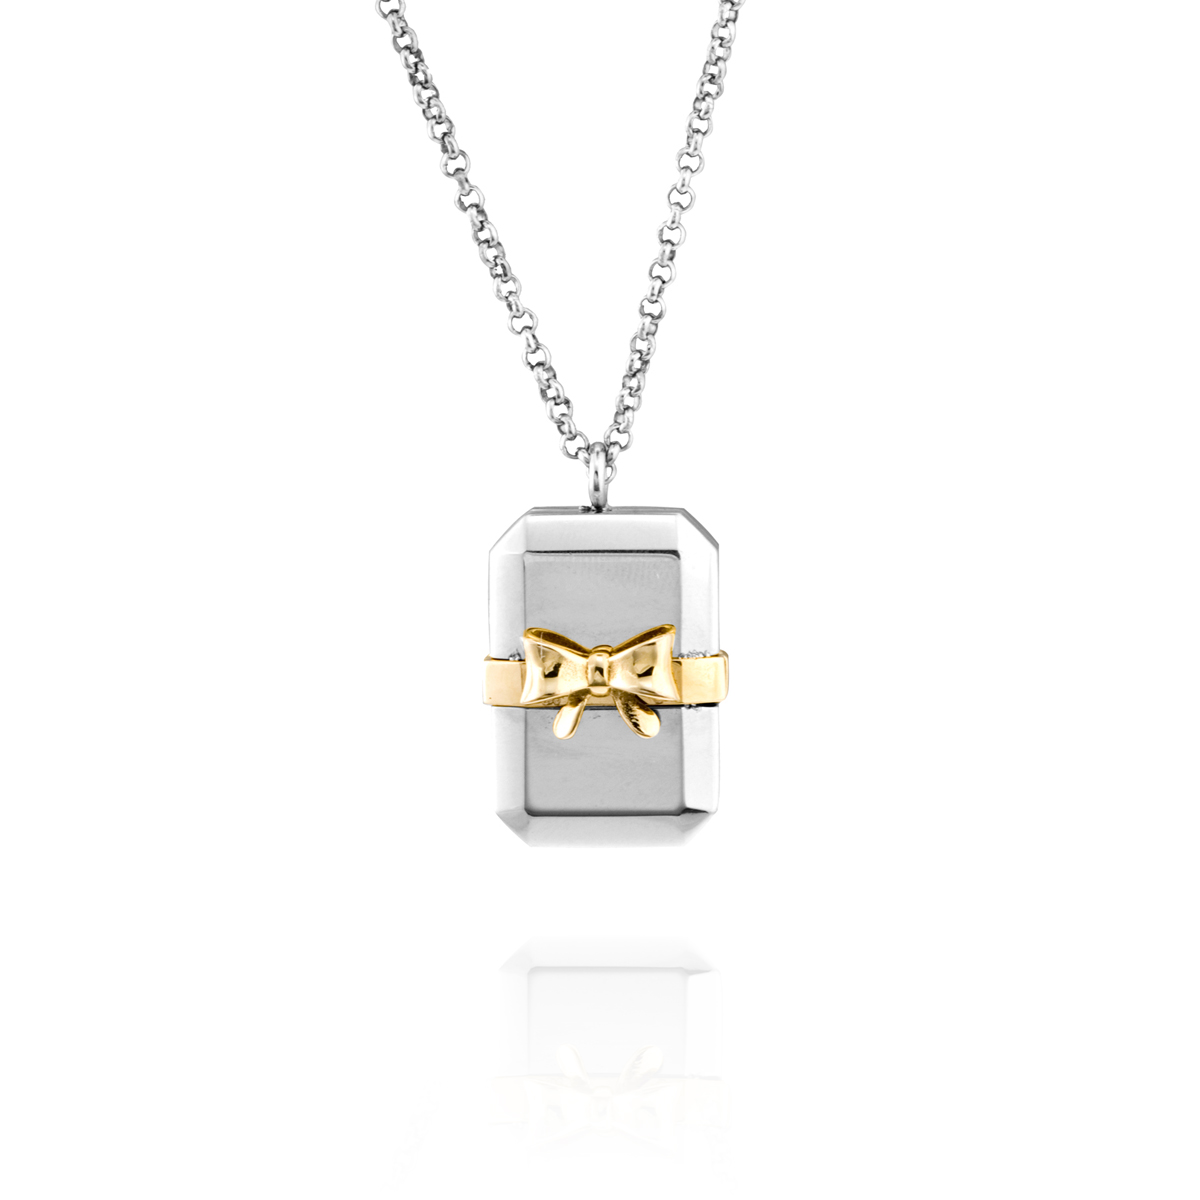 INGNELL JEWELLERY - MOLLY CHARITY